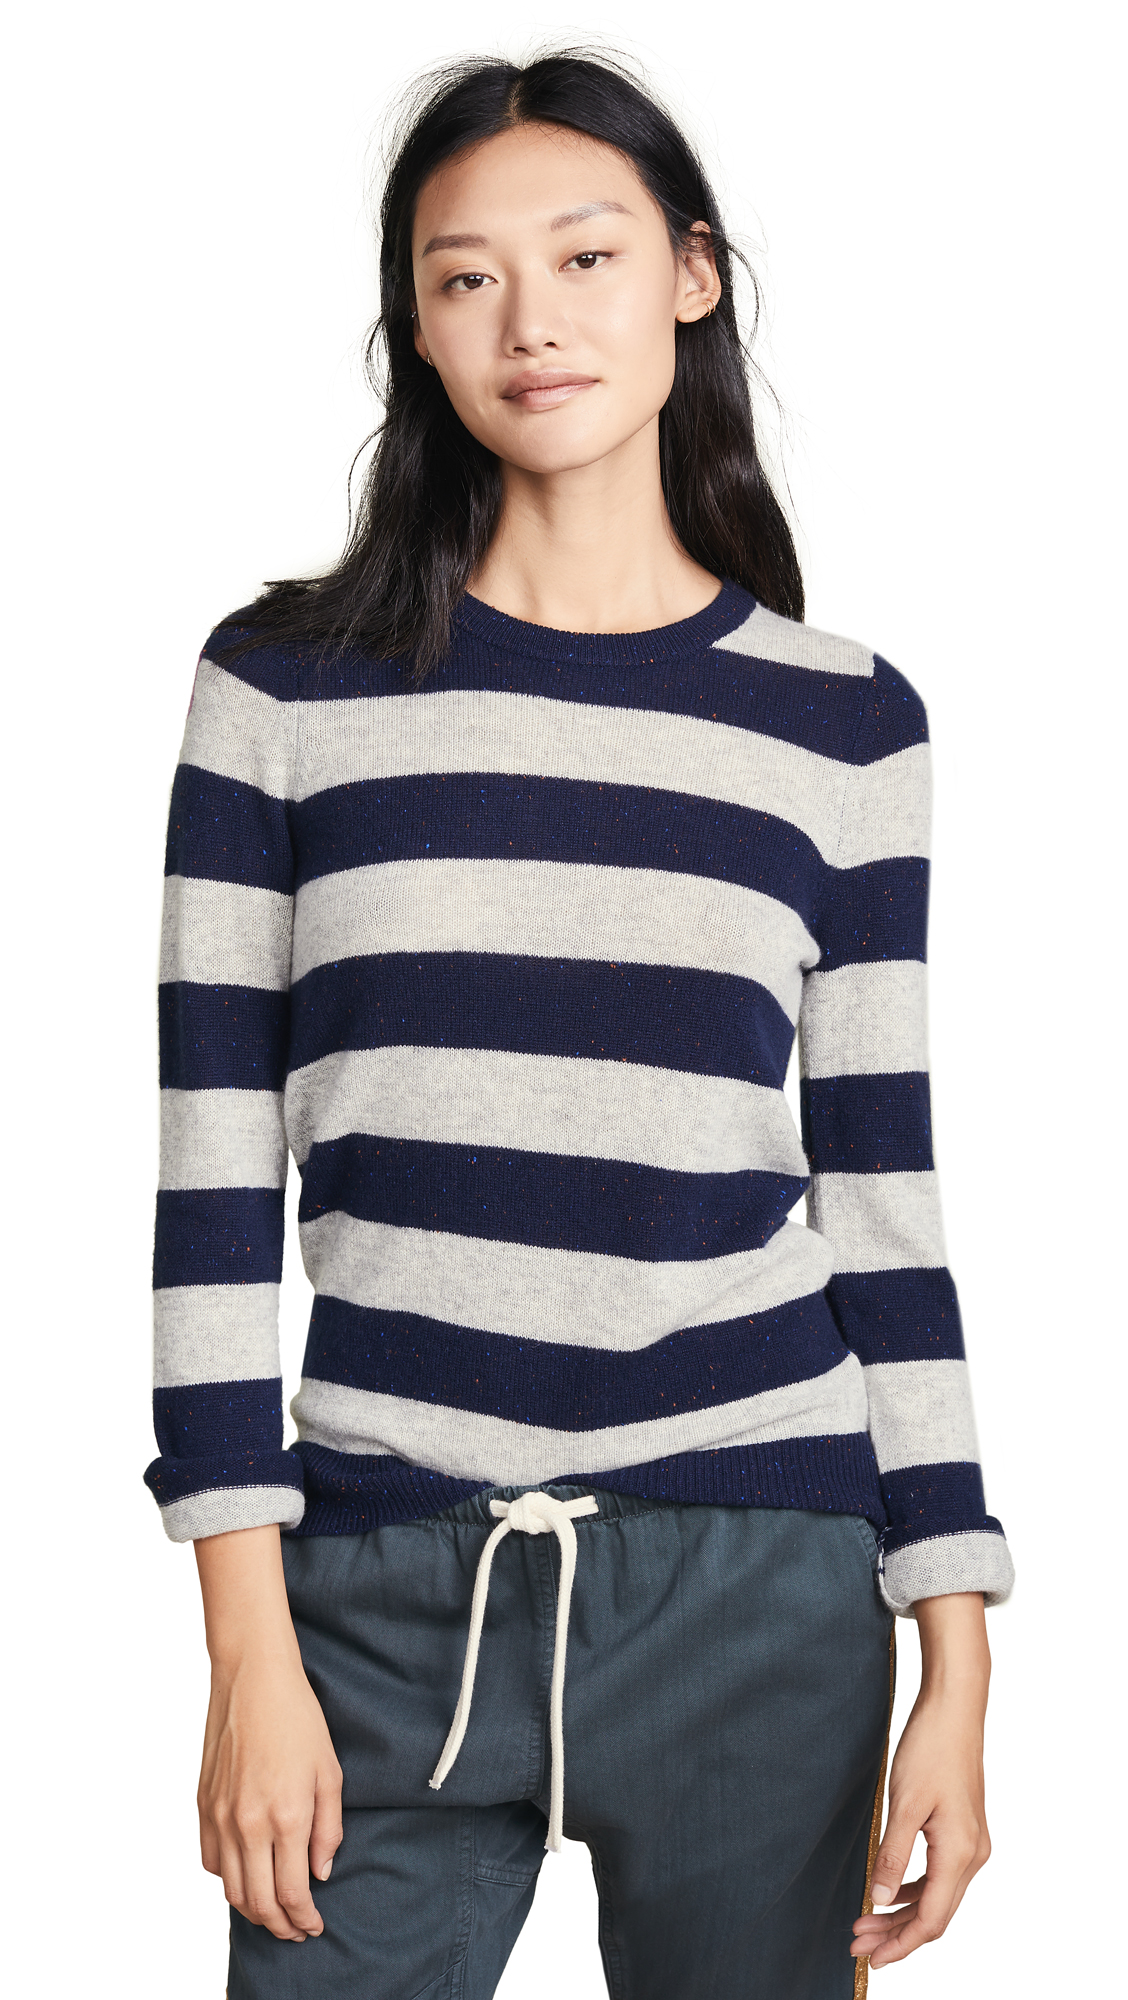 FREECITY Big Strike Dove Cashmere Sweater in Beatles Blue/Heather